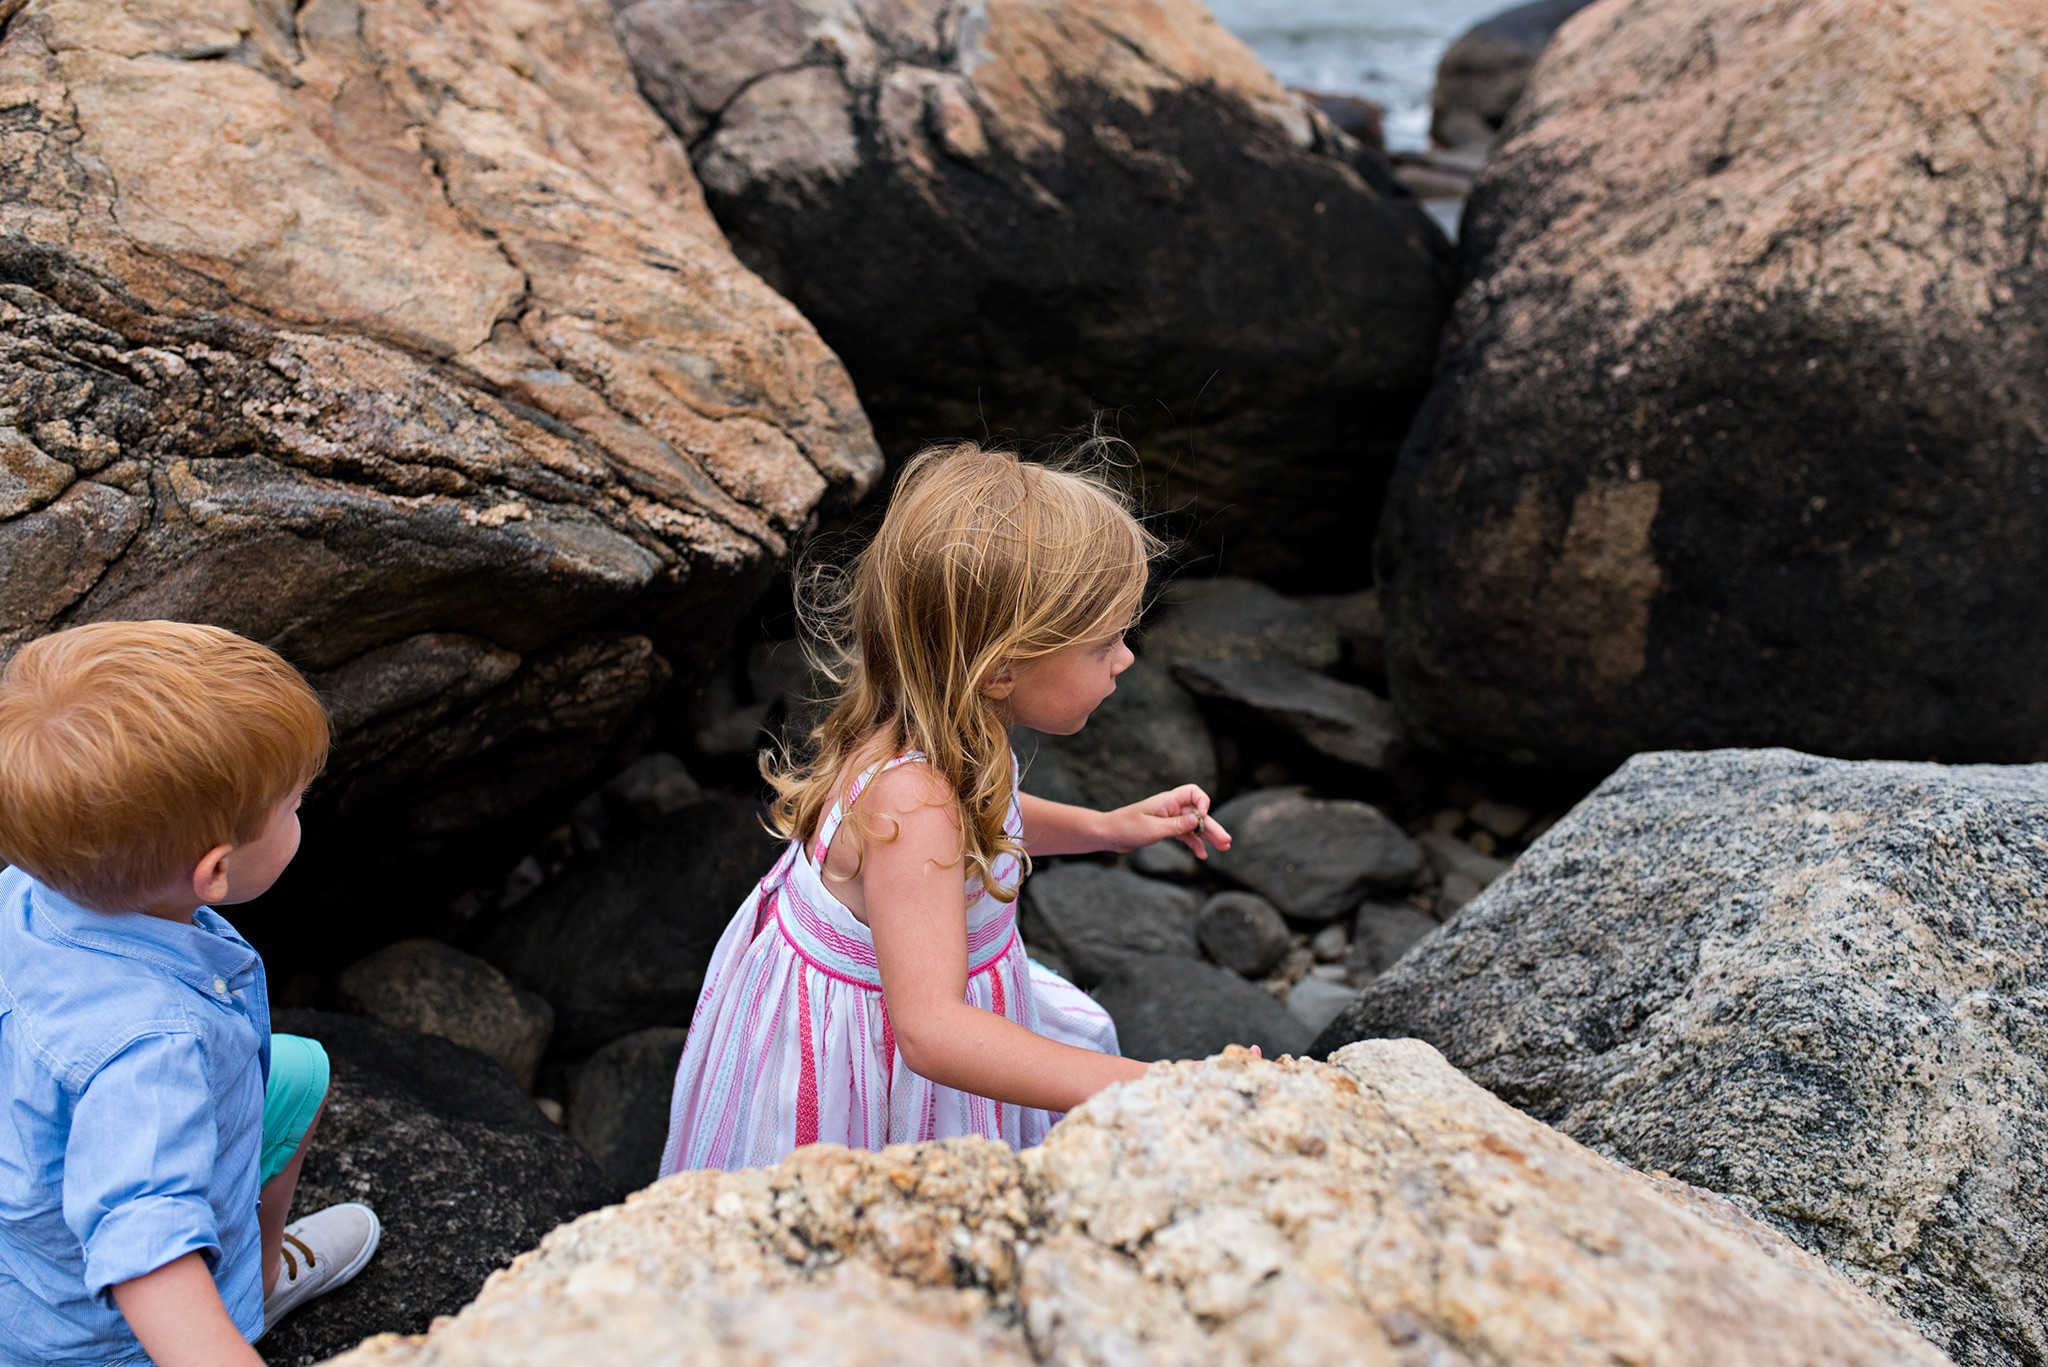 children exploring rocks at the beach ct childrens photographer